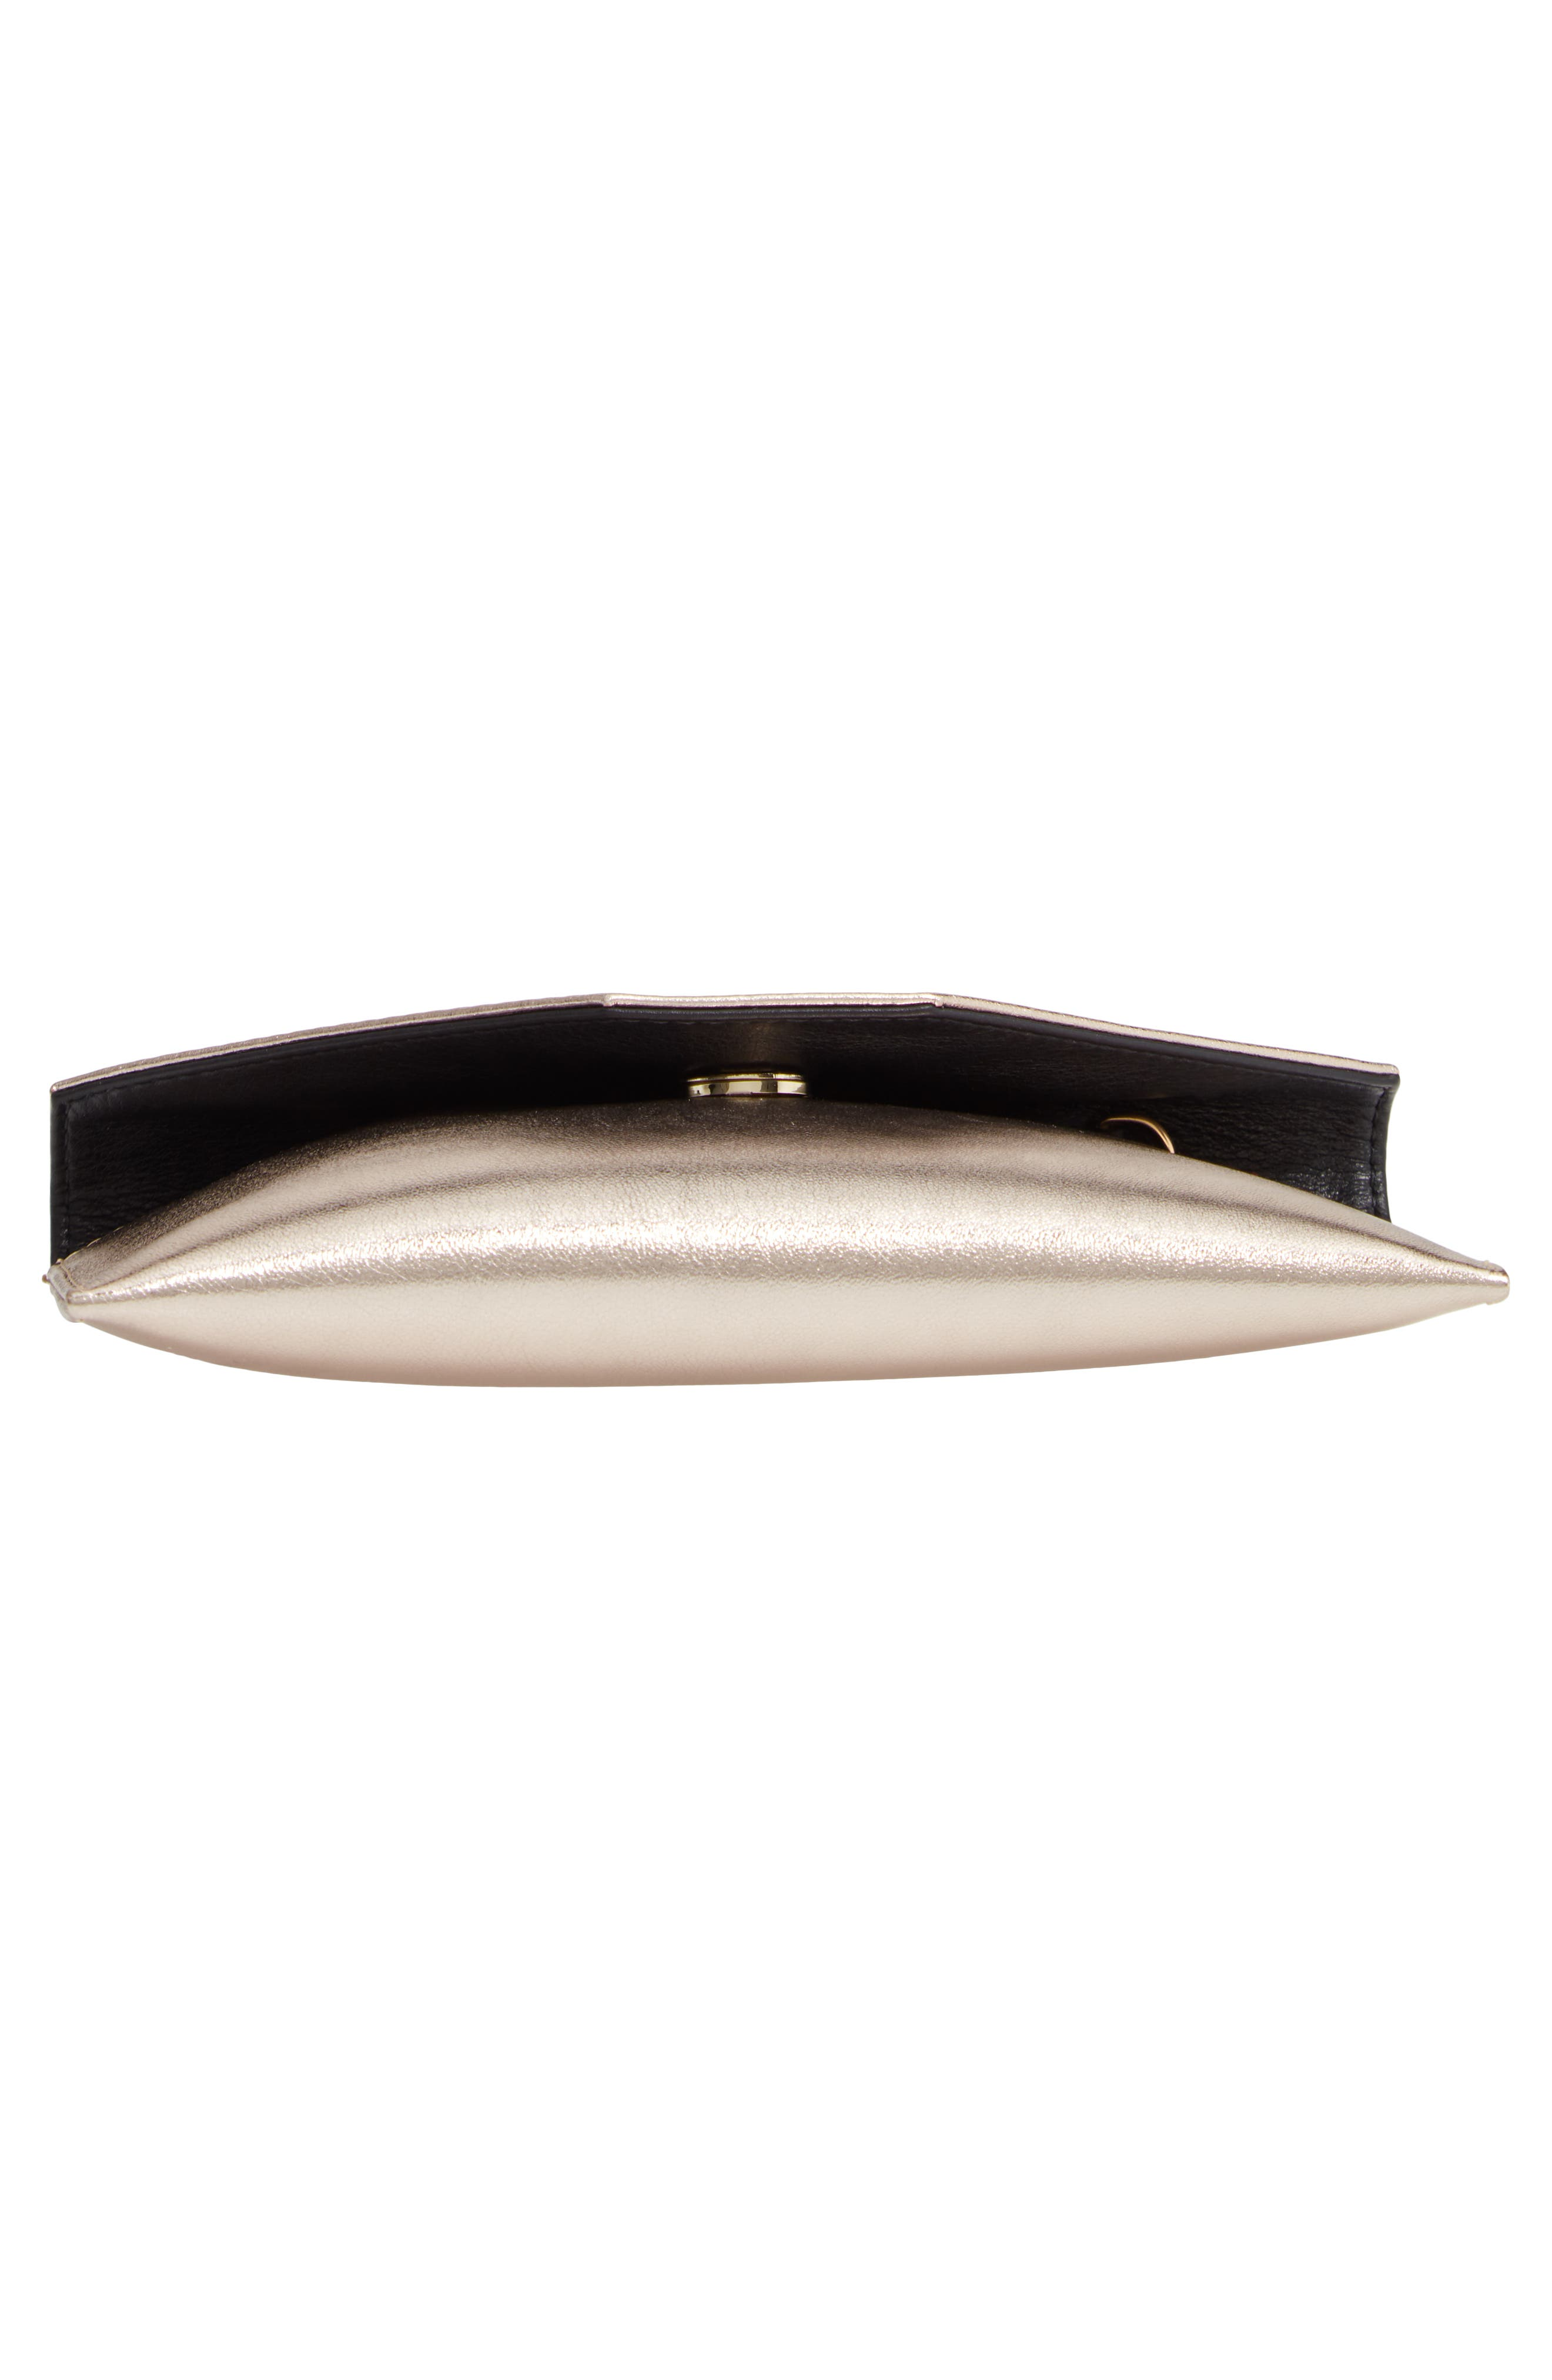 Annabelle Metallic Calfskin Leather Clutch,                             Alternate thumbnail 6, color,                             METALLIC GOLD/ GOLD